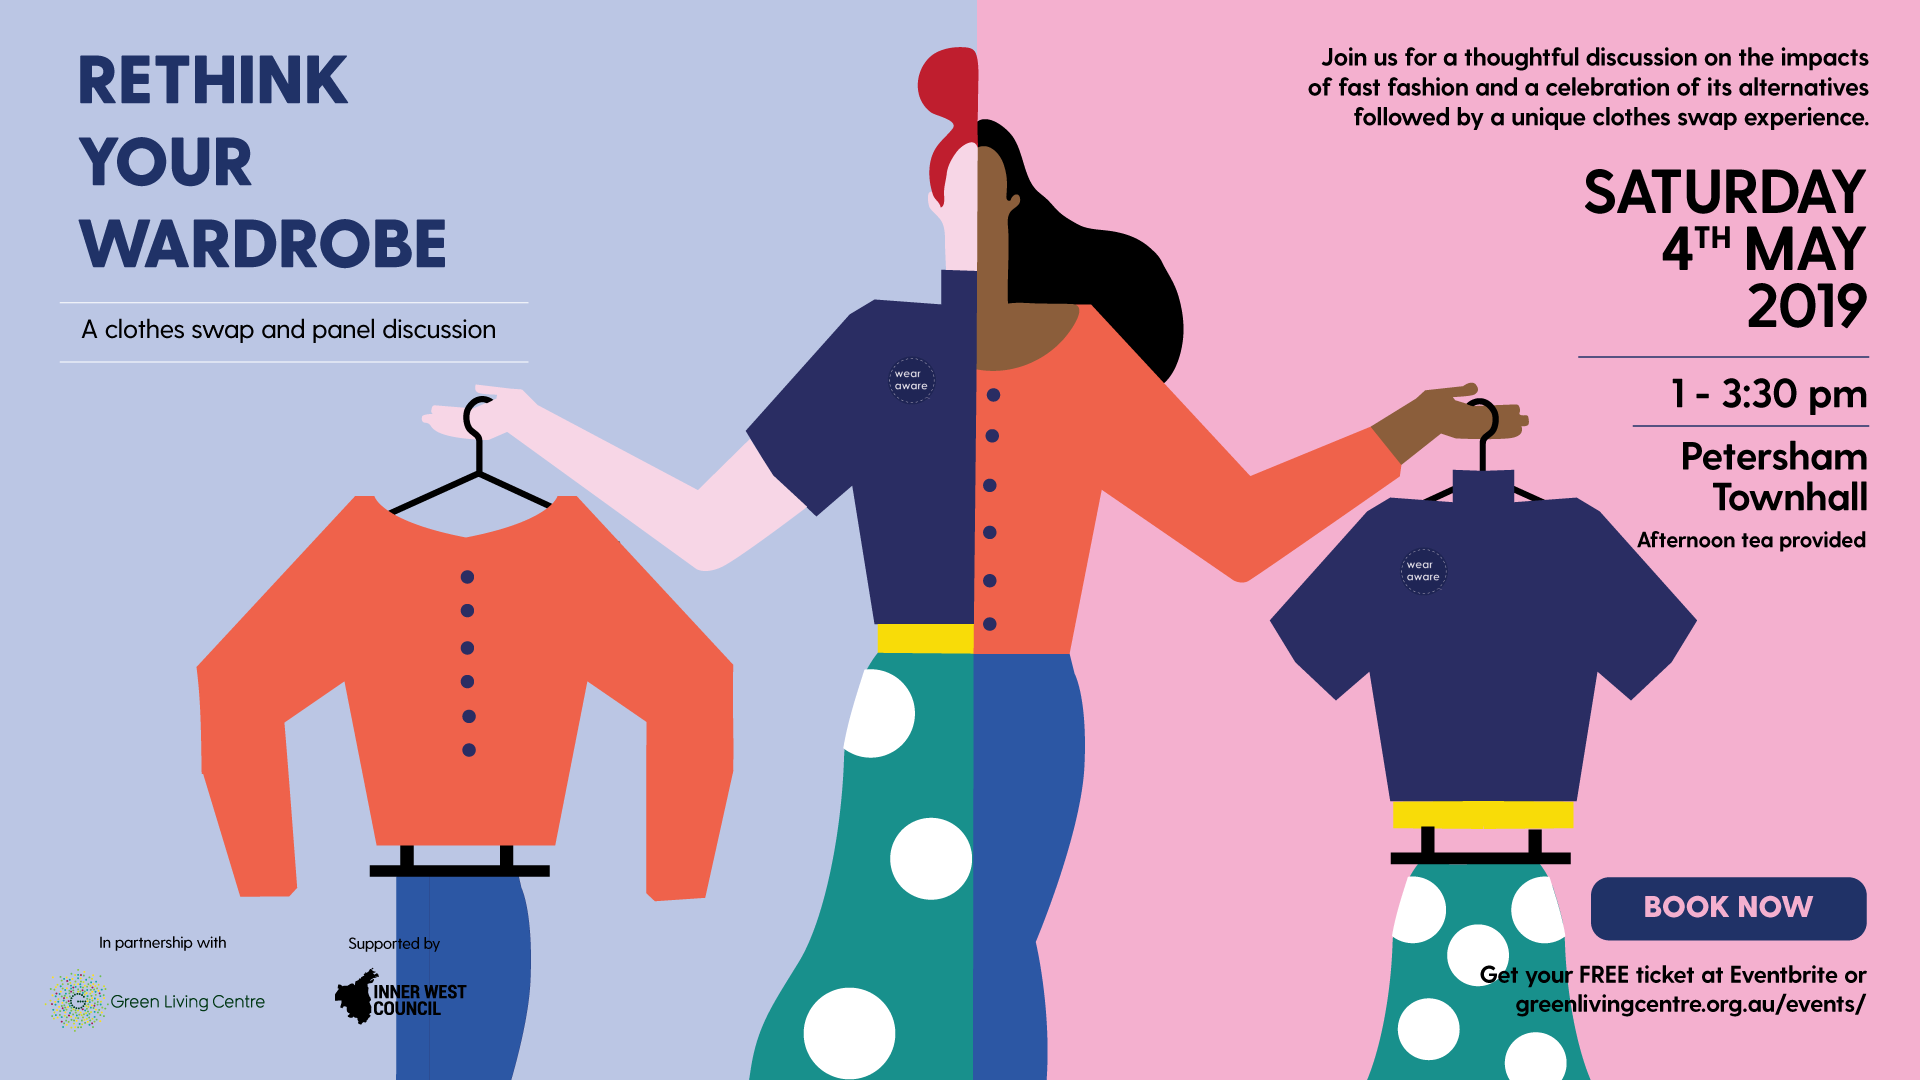 Rethink your wardrobe: A panel discussion and clothes swap